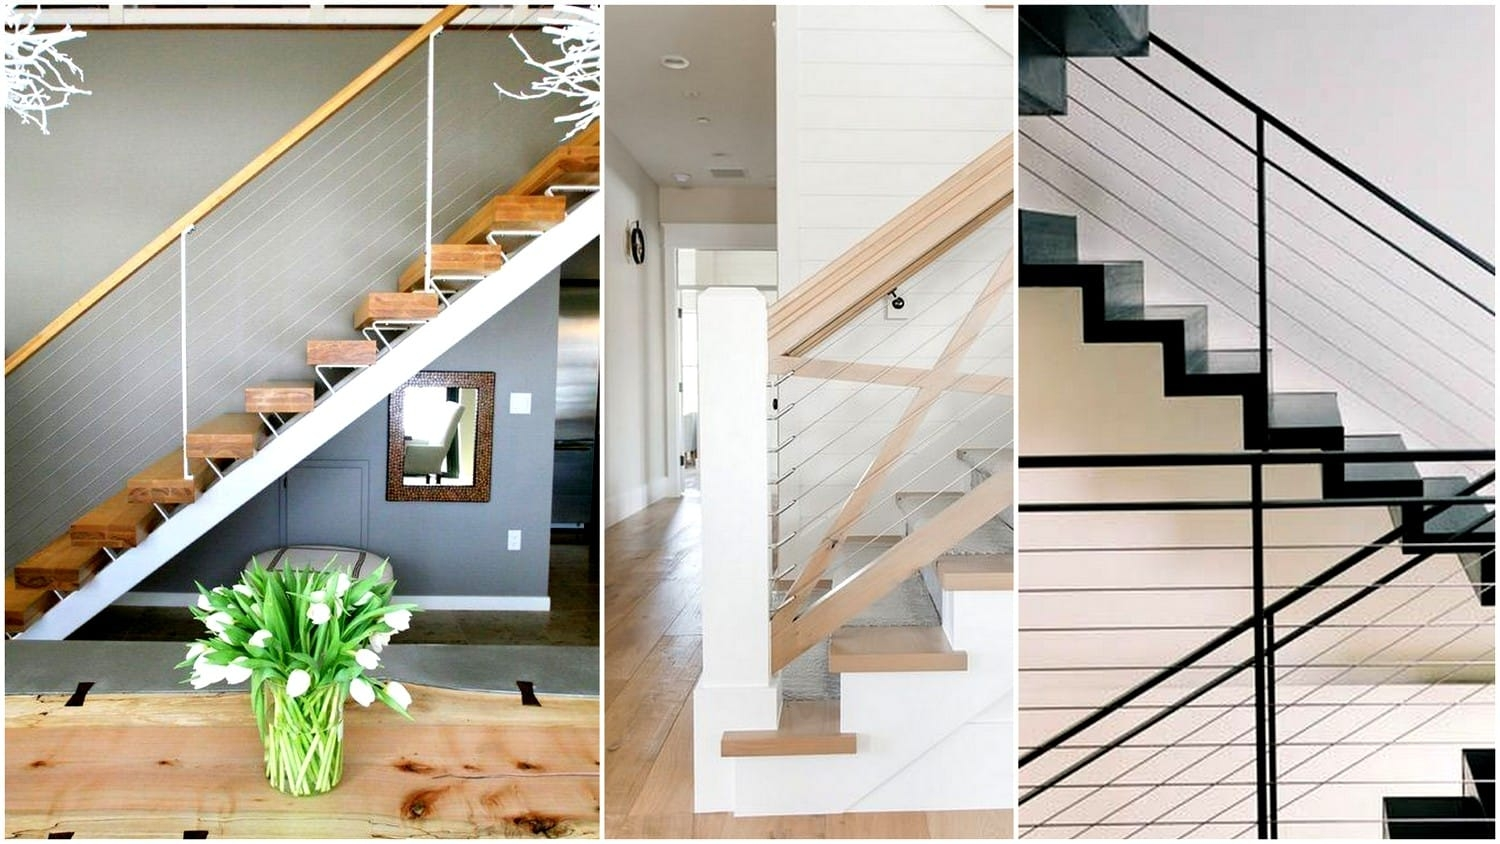 What You Need To Know And How To Use Cable Railings In Your | Wood And Cable Stair Railing | Dark | Diy | Exterior Irregular Stair | Residential | Forgings